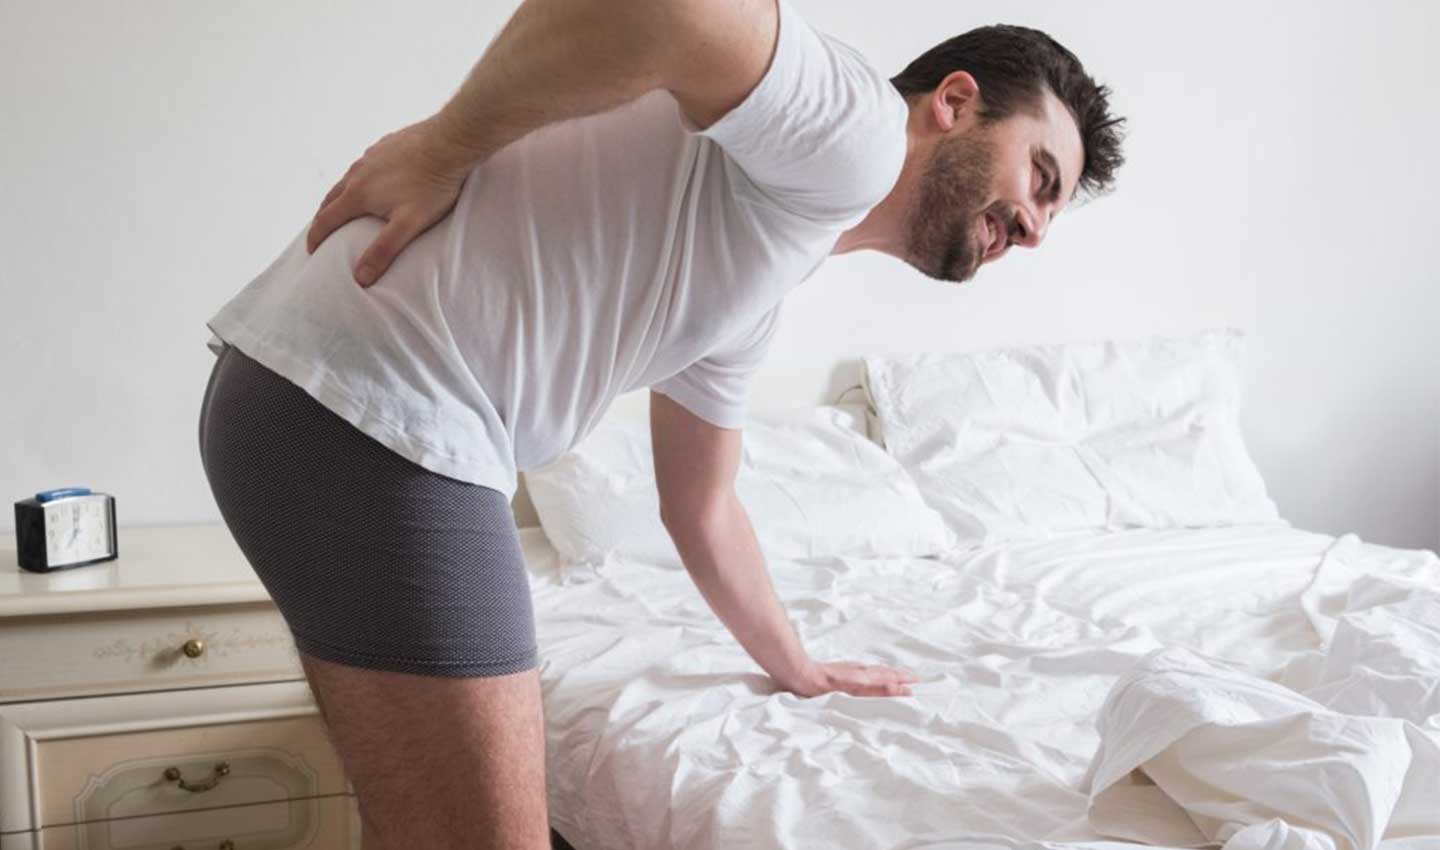 Tempurpedic Vs Sleep Number >> The 10 Best Mattresses for Sciatica Pain To Buy in 2019